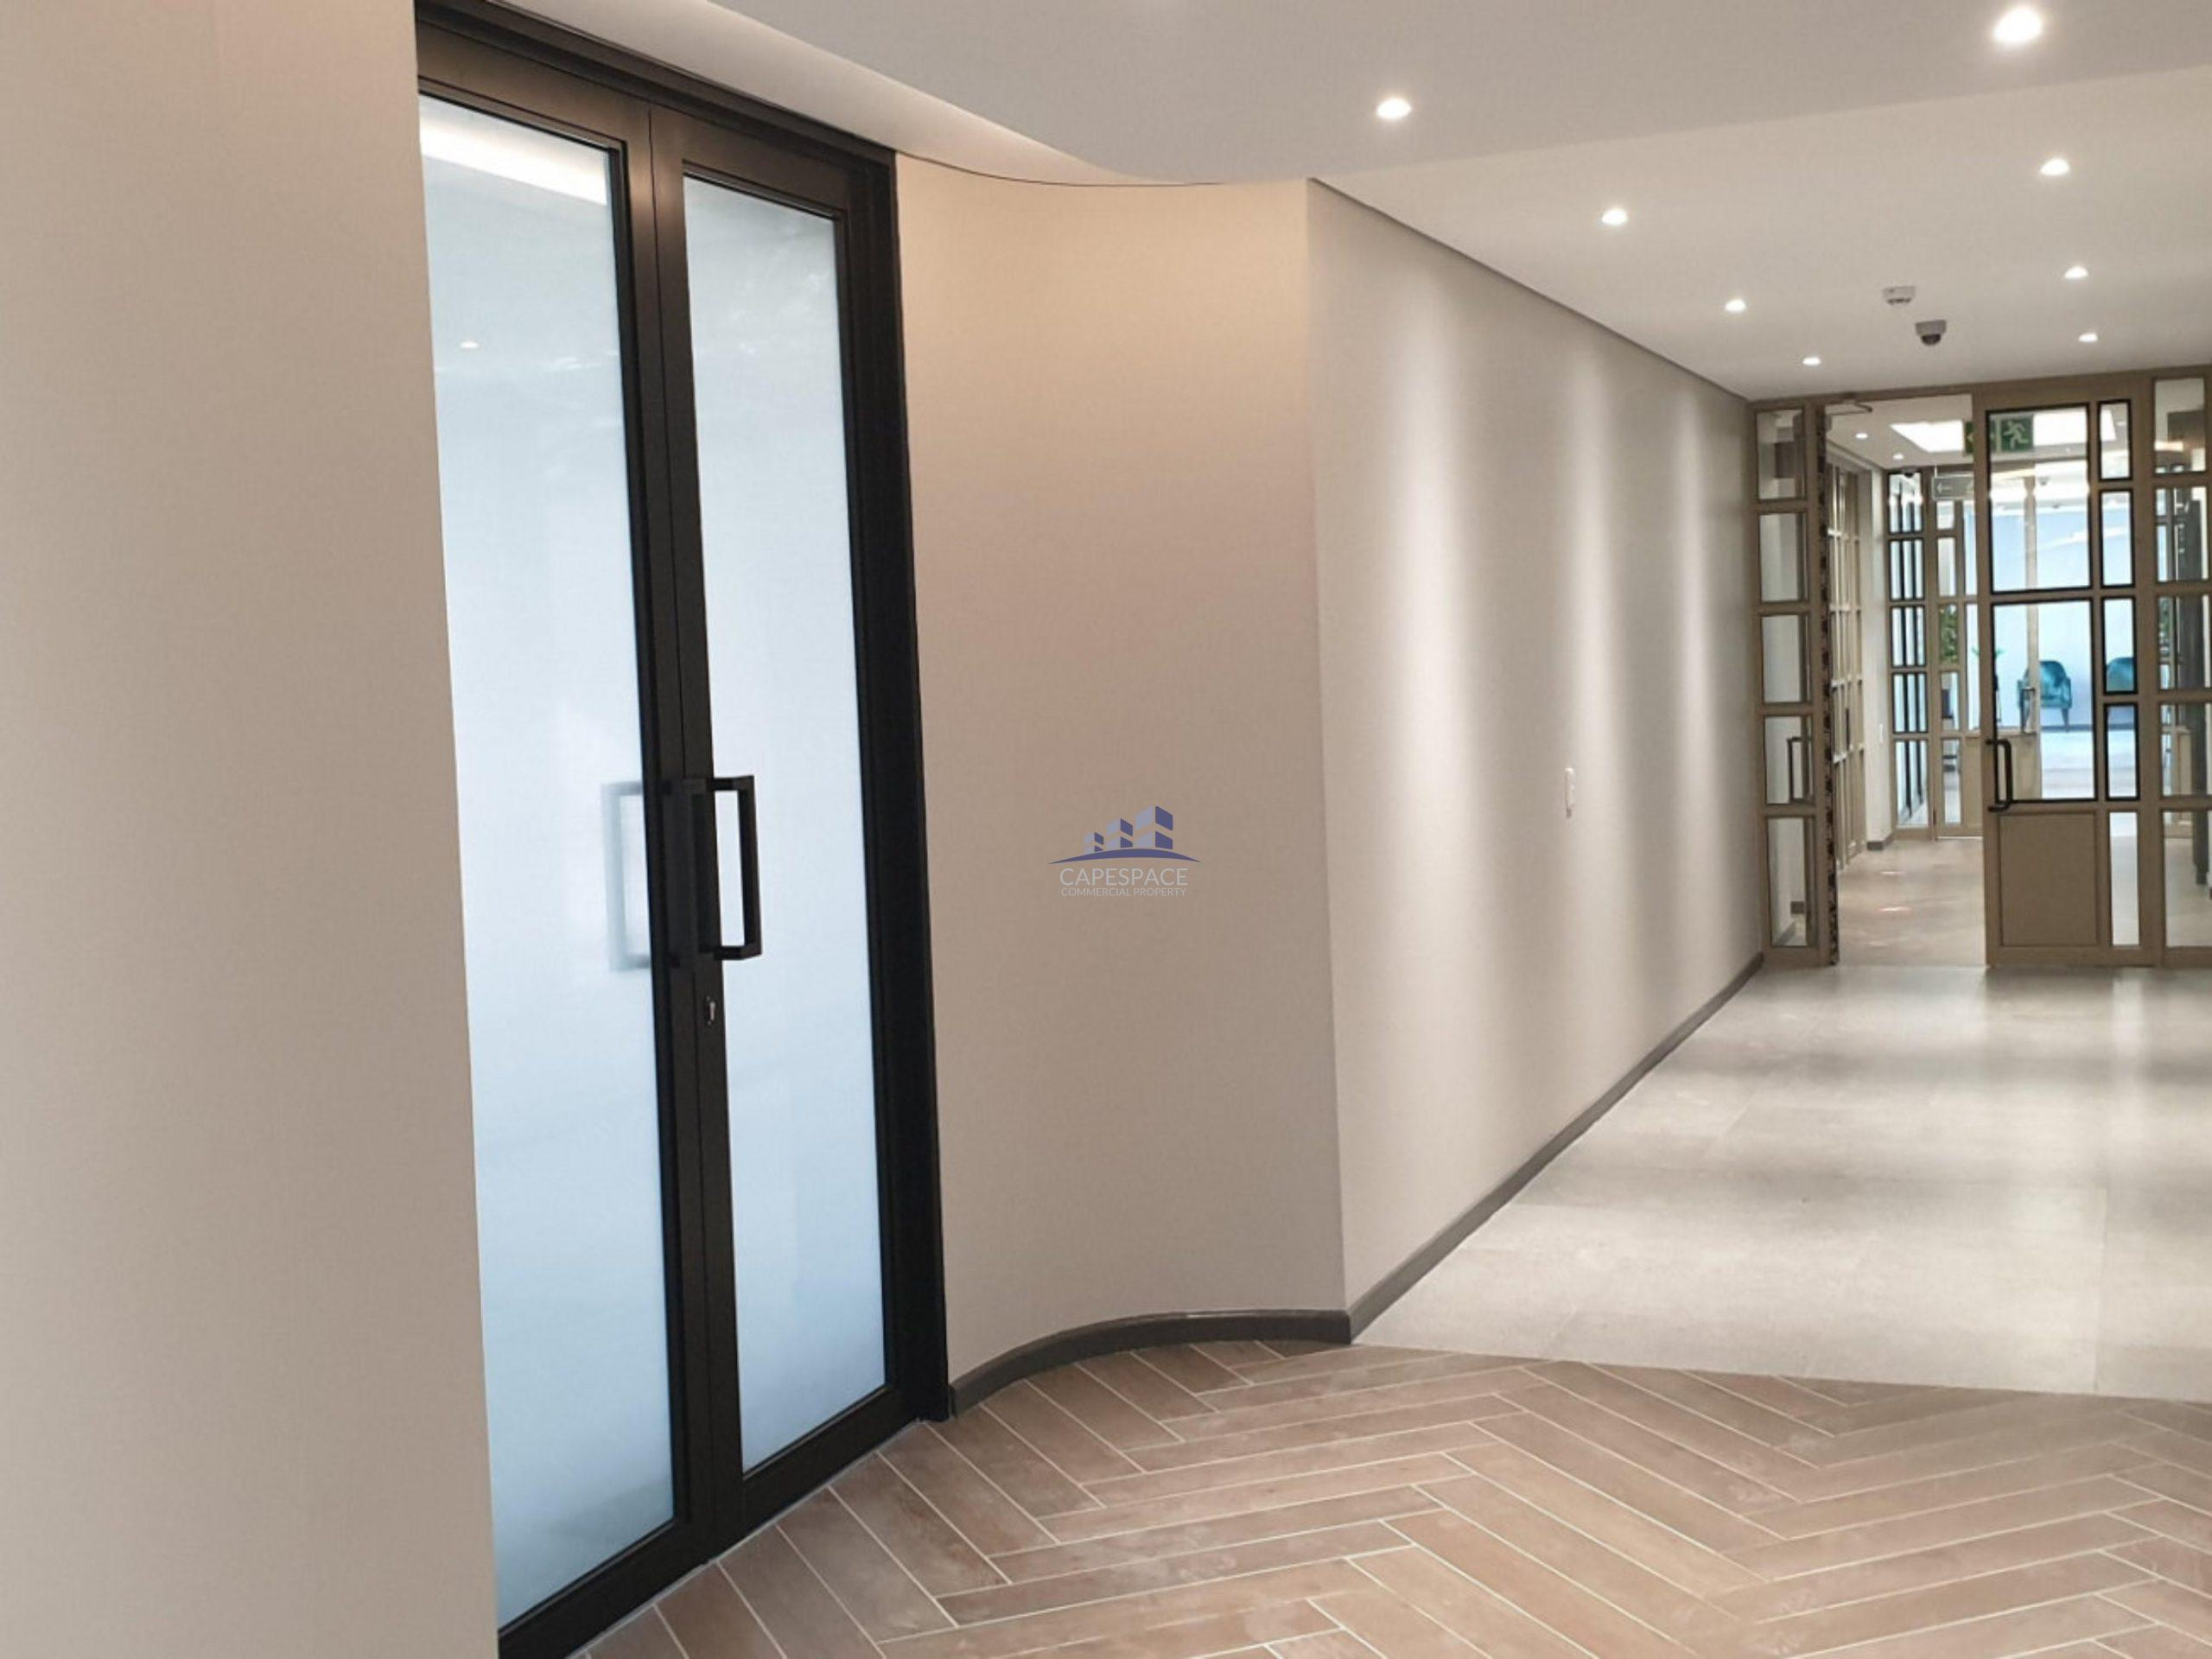 458 m² Office Space to Rent I No 1 Waterhouse Place Century City